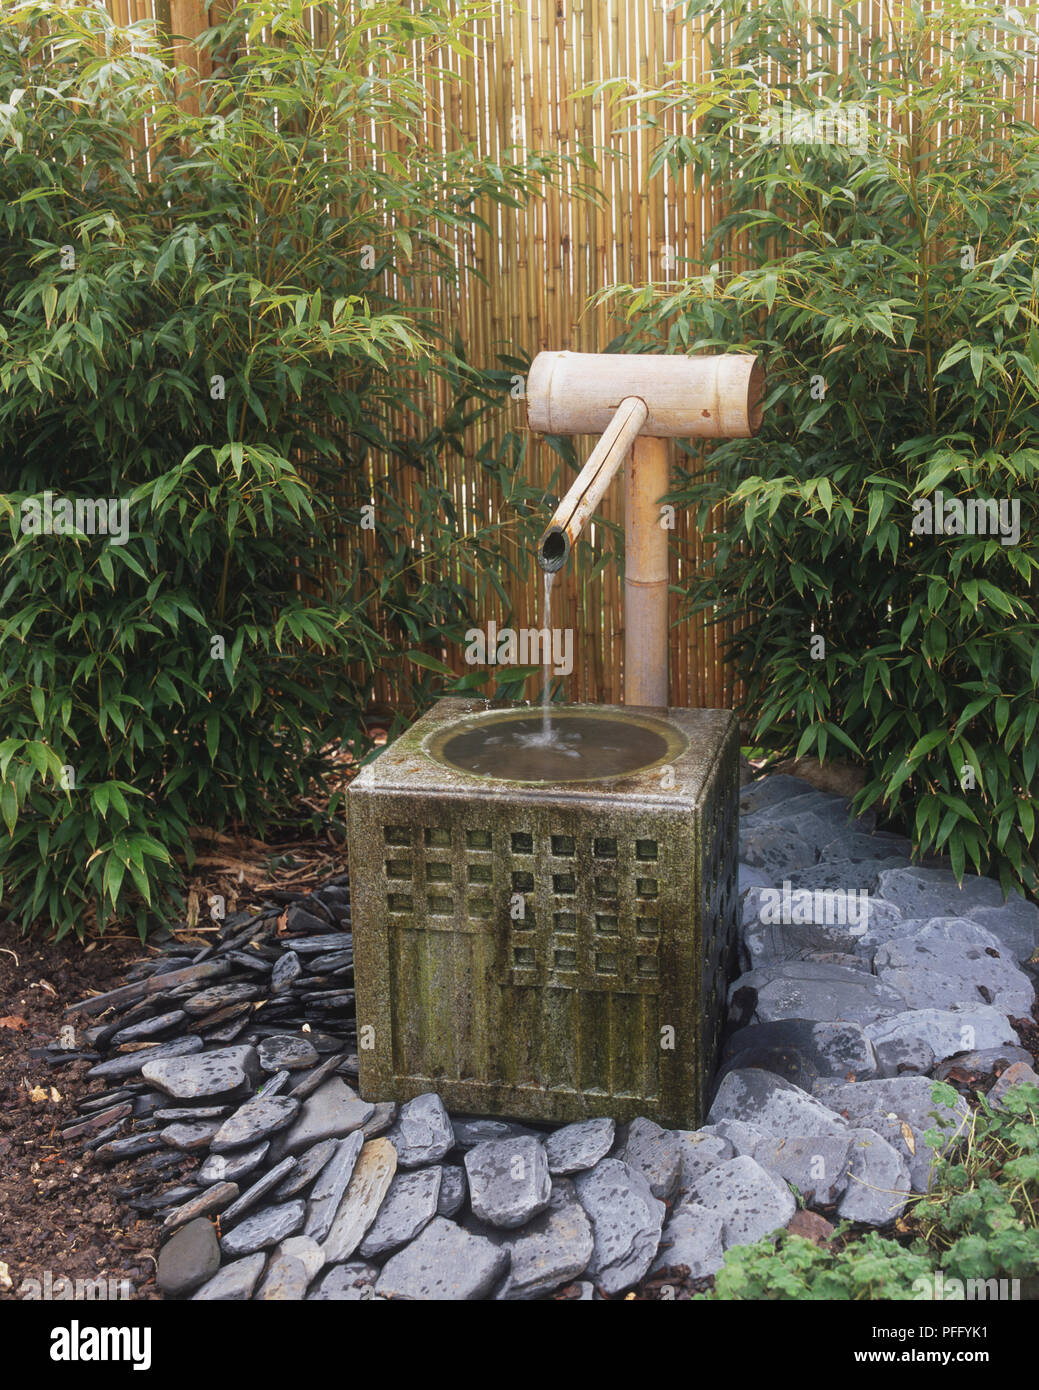 Water Trickling Through Bamboo Pipe And Spout Into Square Basin, In Front  Of Bamboo Garden Fence.